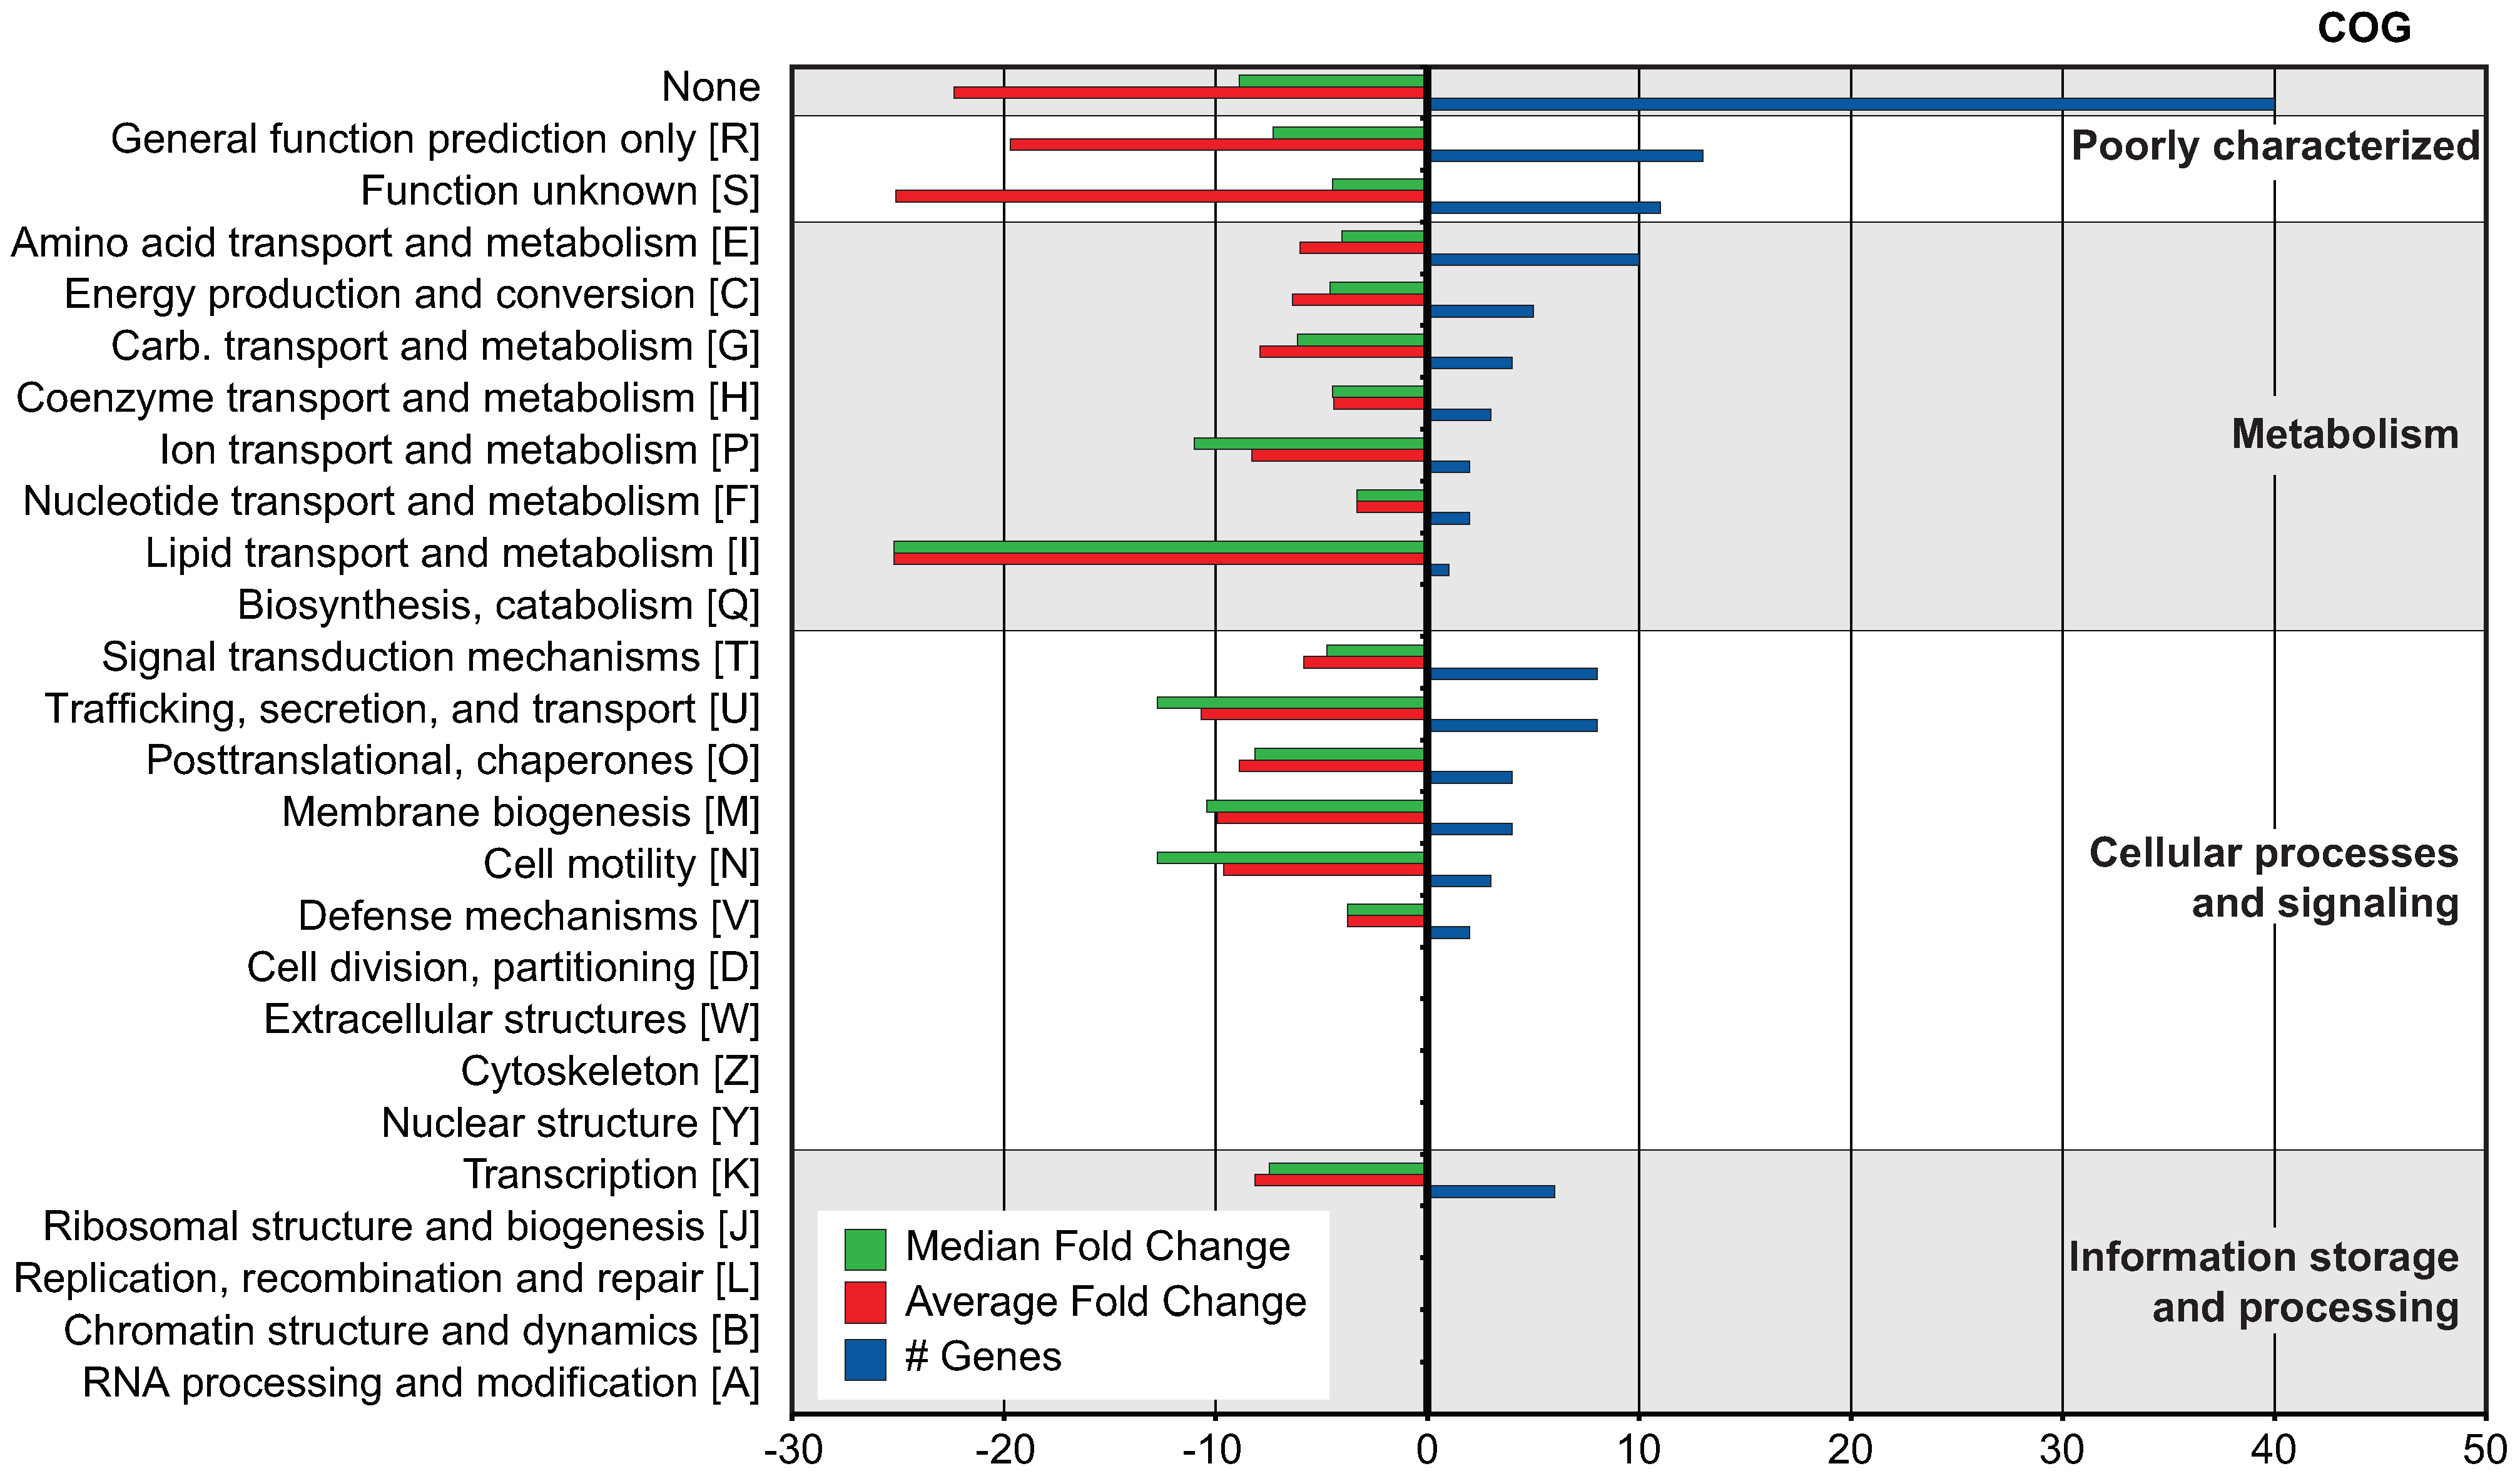 COG analysis of 133 genes co-regulated with SPI-2.